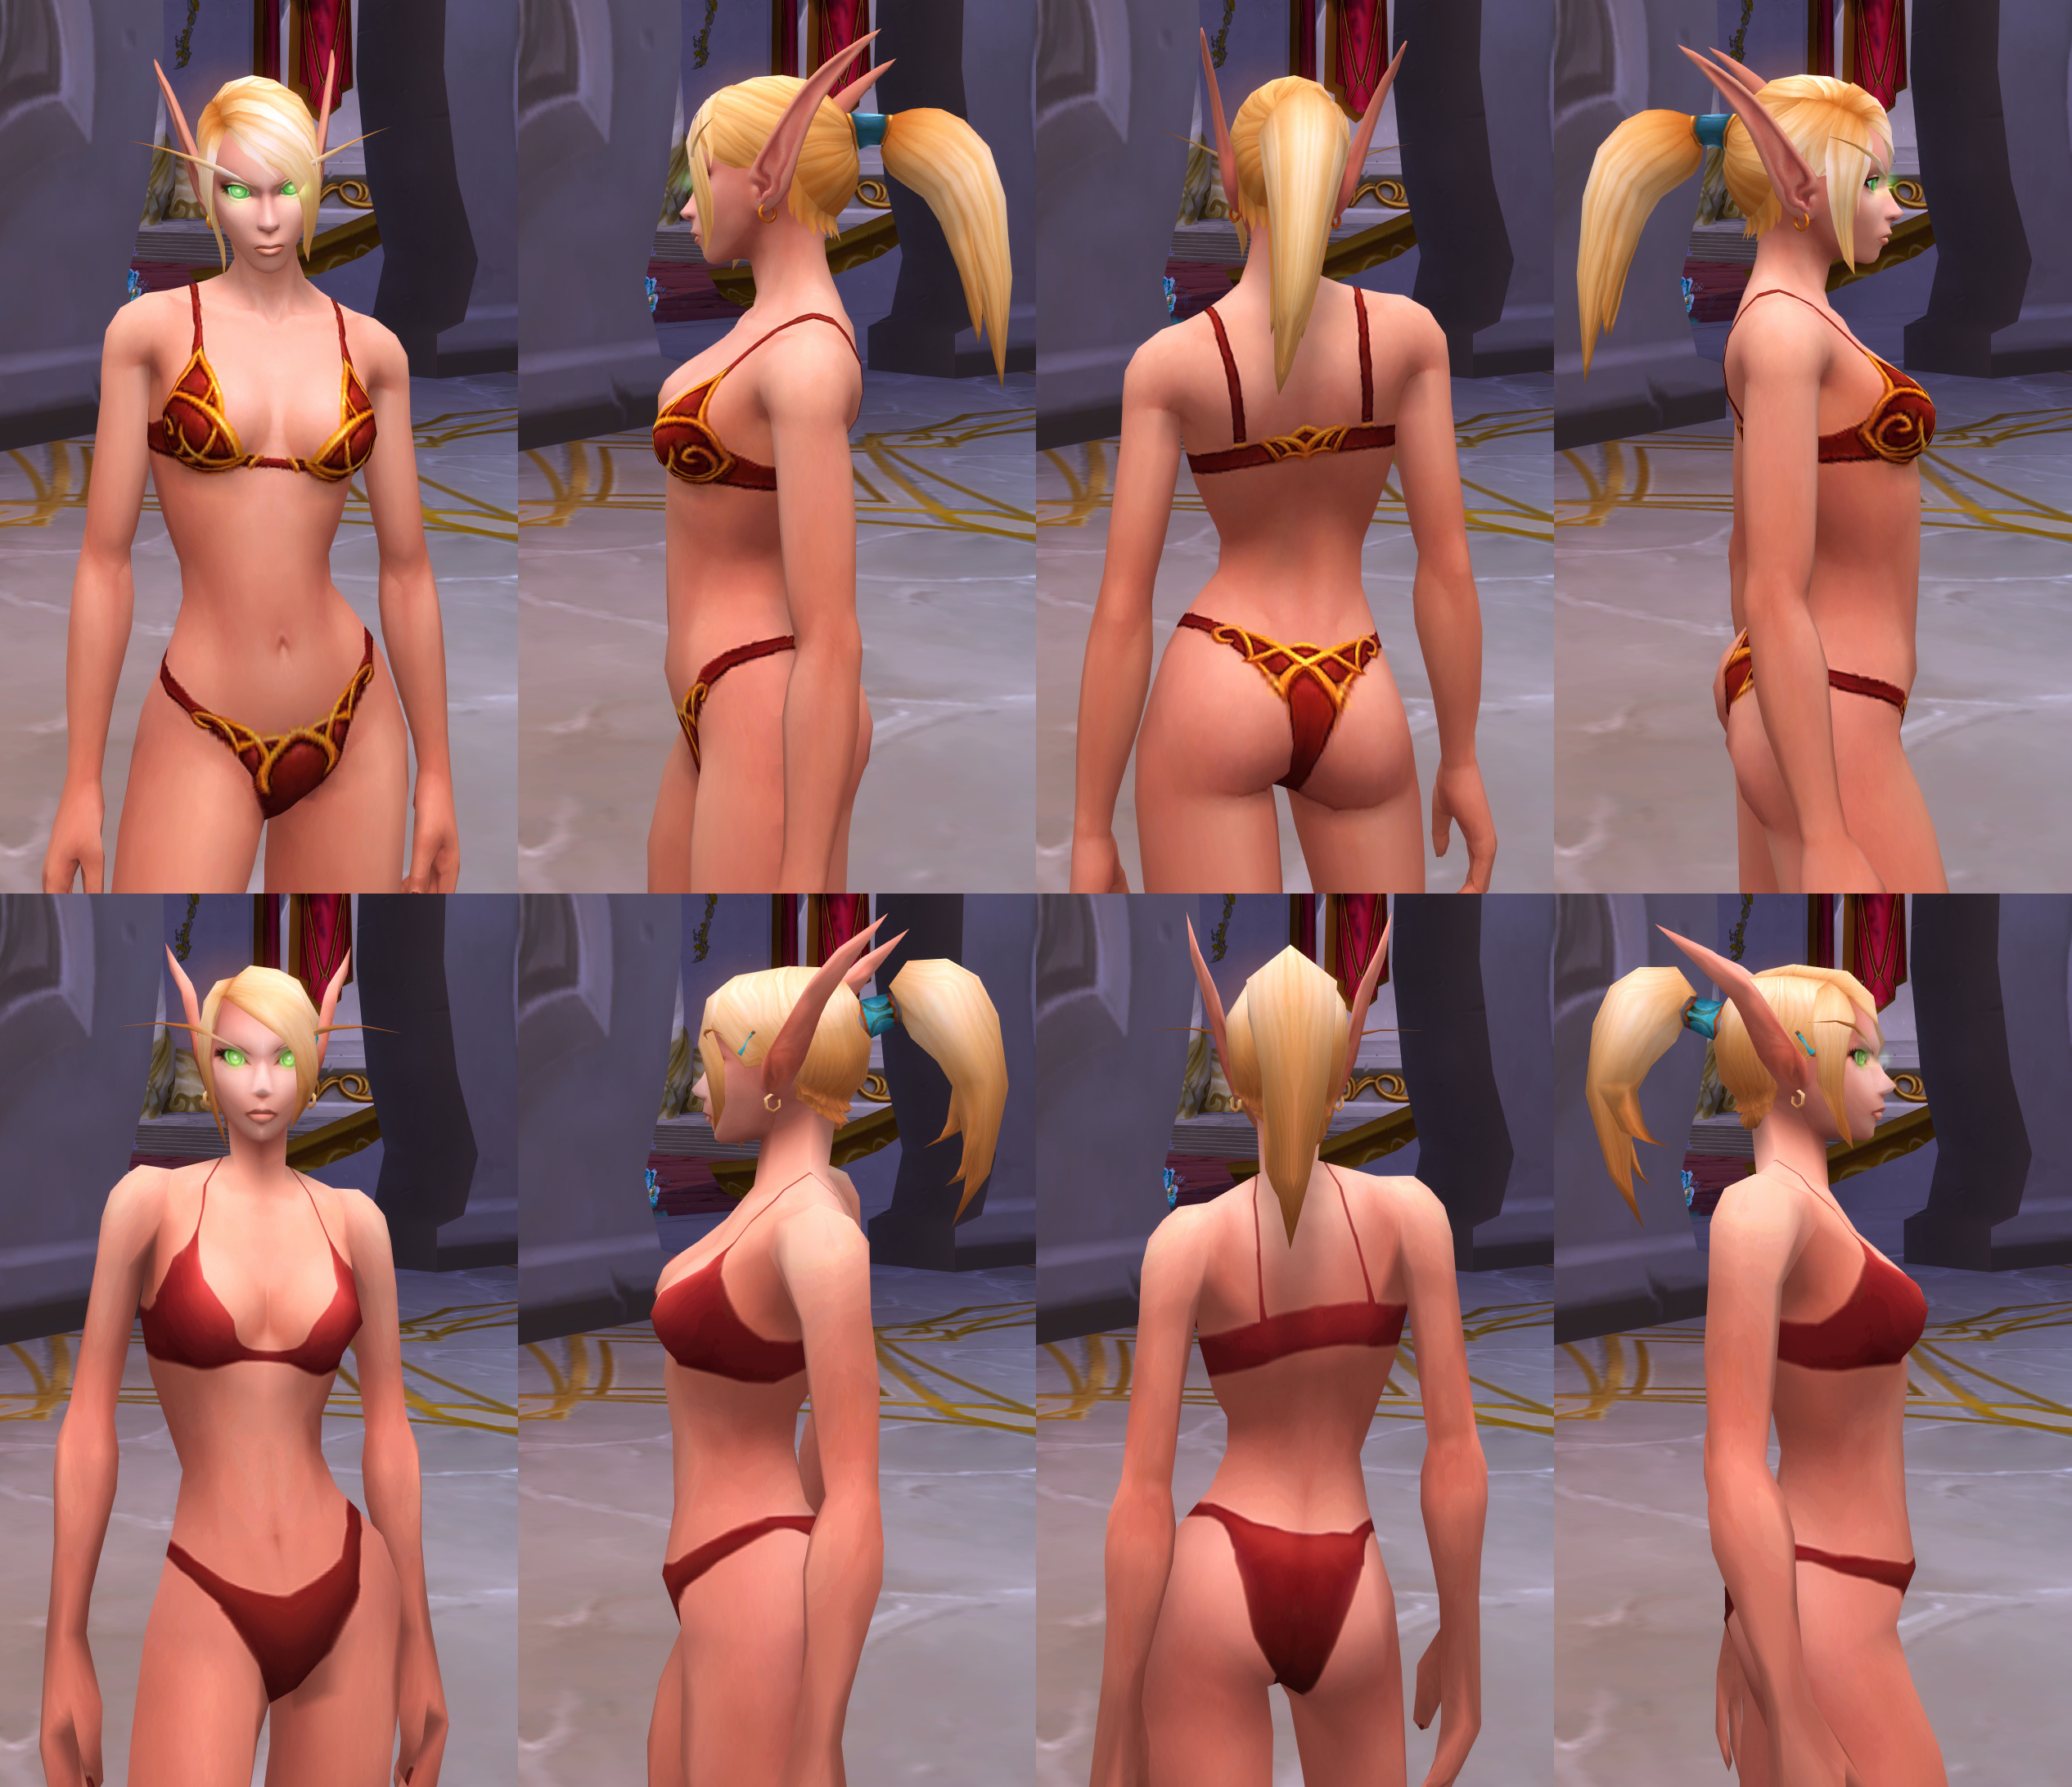 Blood elf butts nackt video